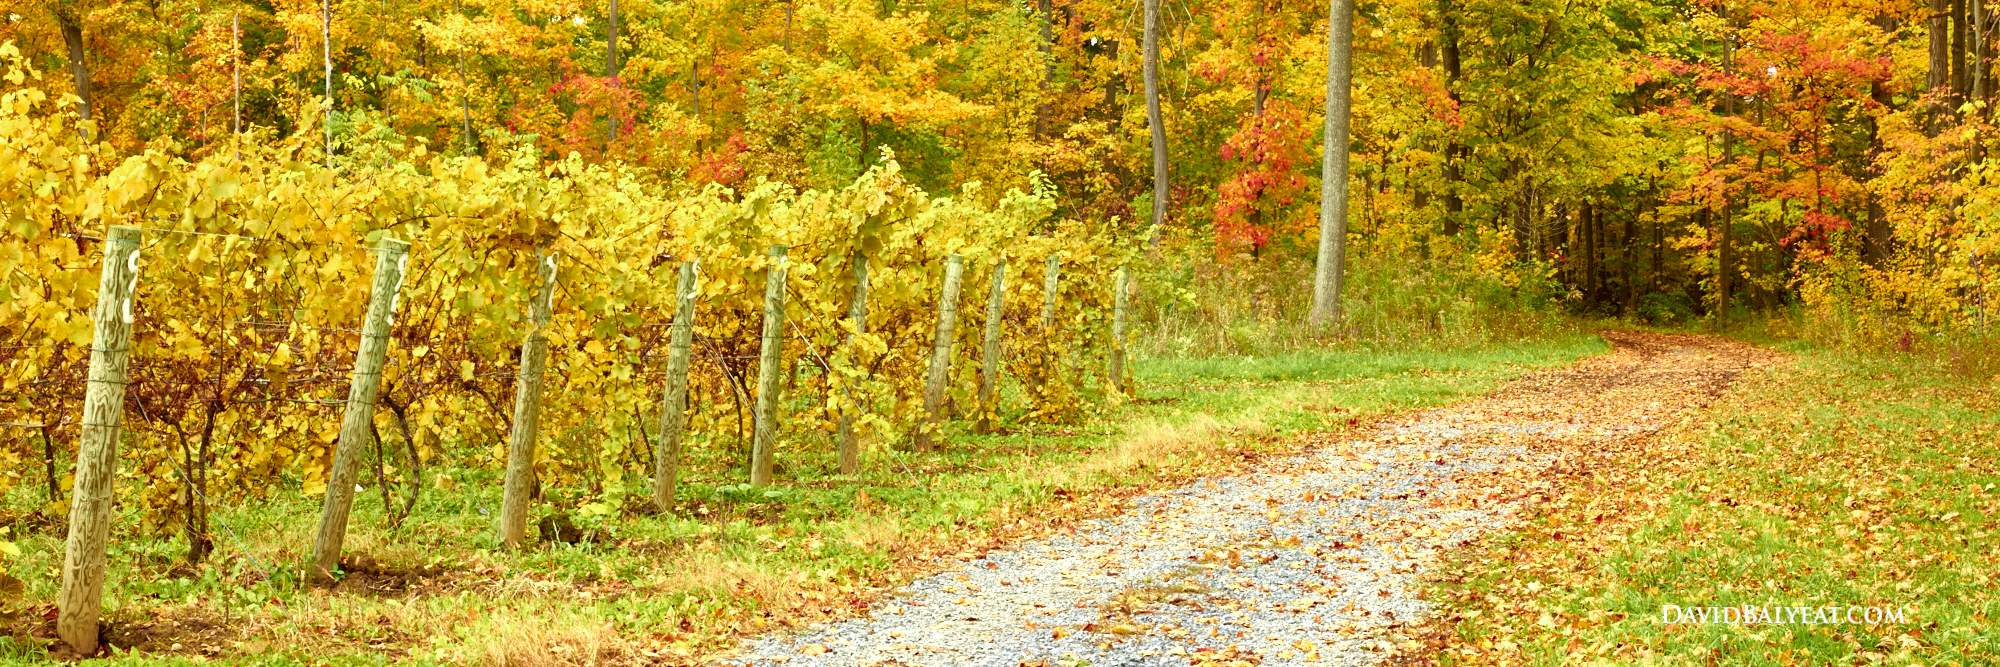 finger lakes vineyard fall harvest autumn panoramic high definition